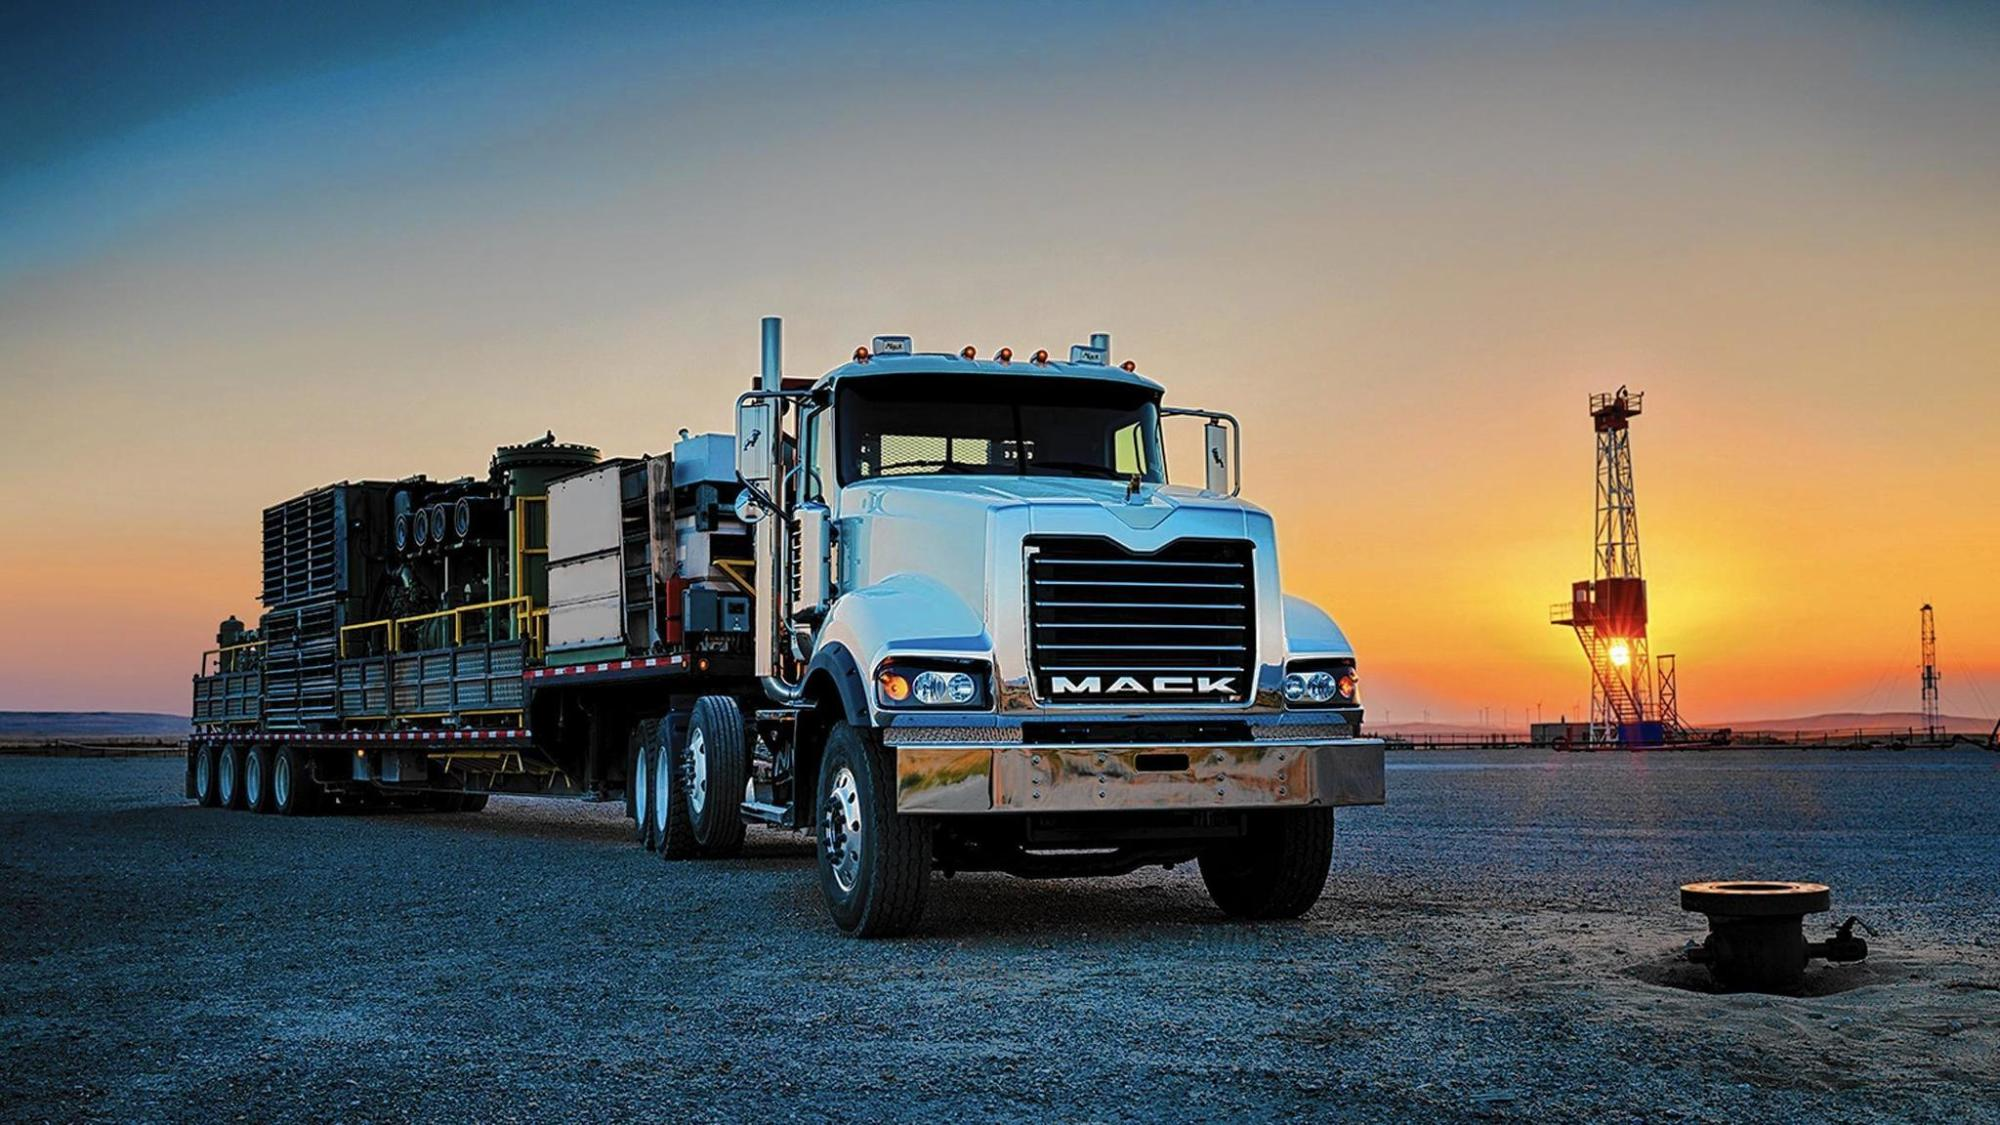 hight resolution of mack truck titan